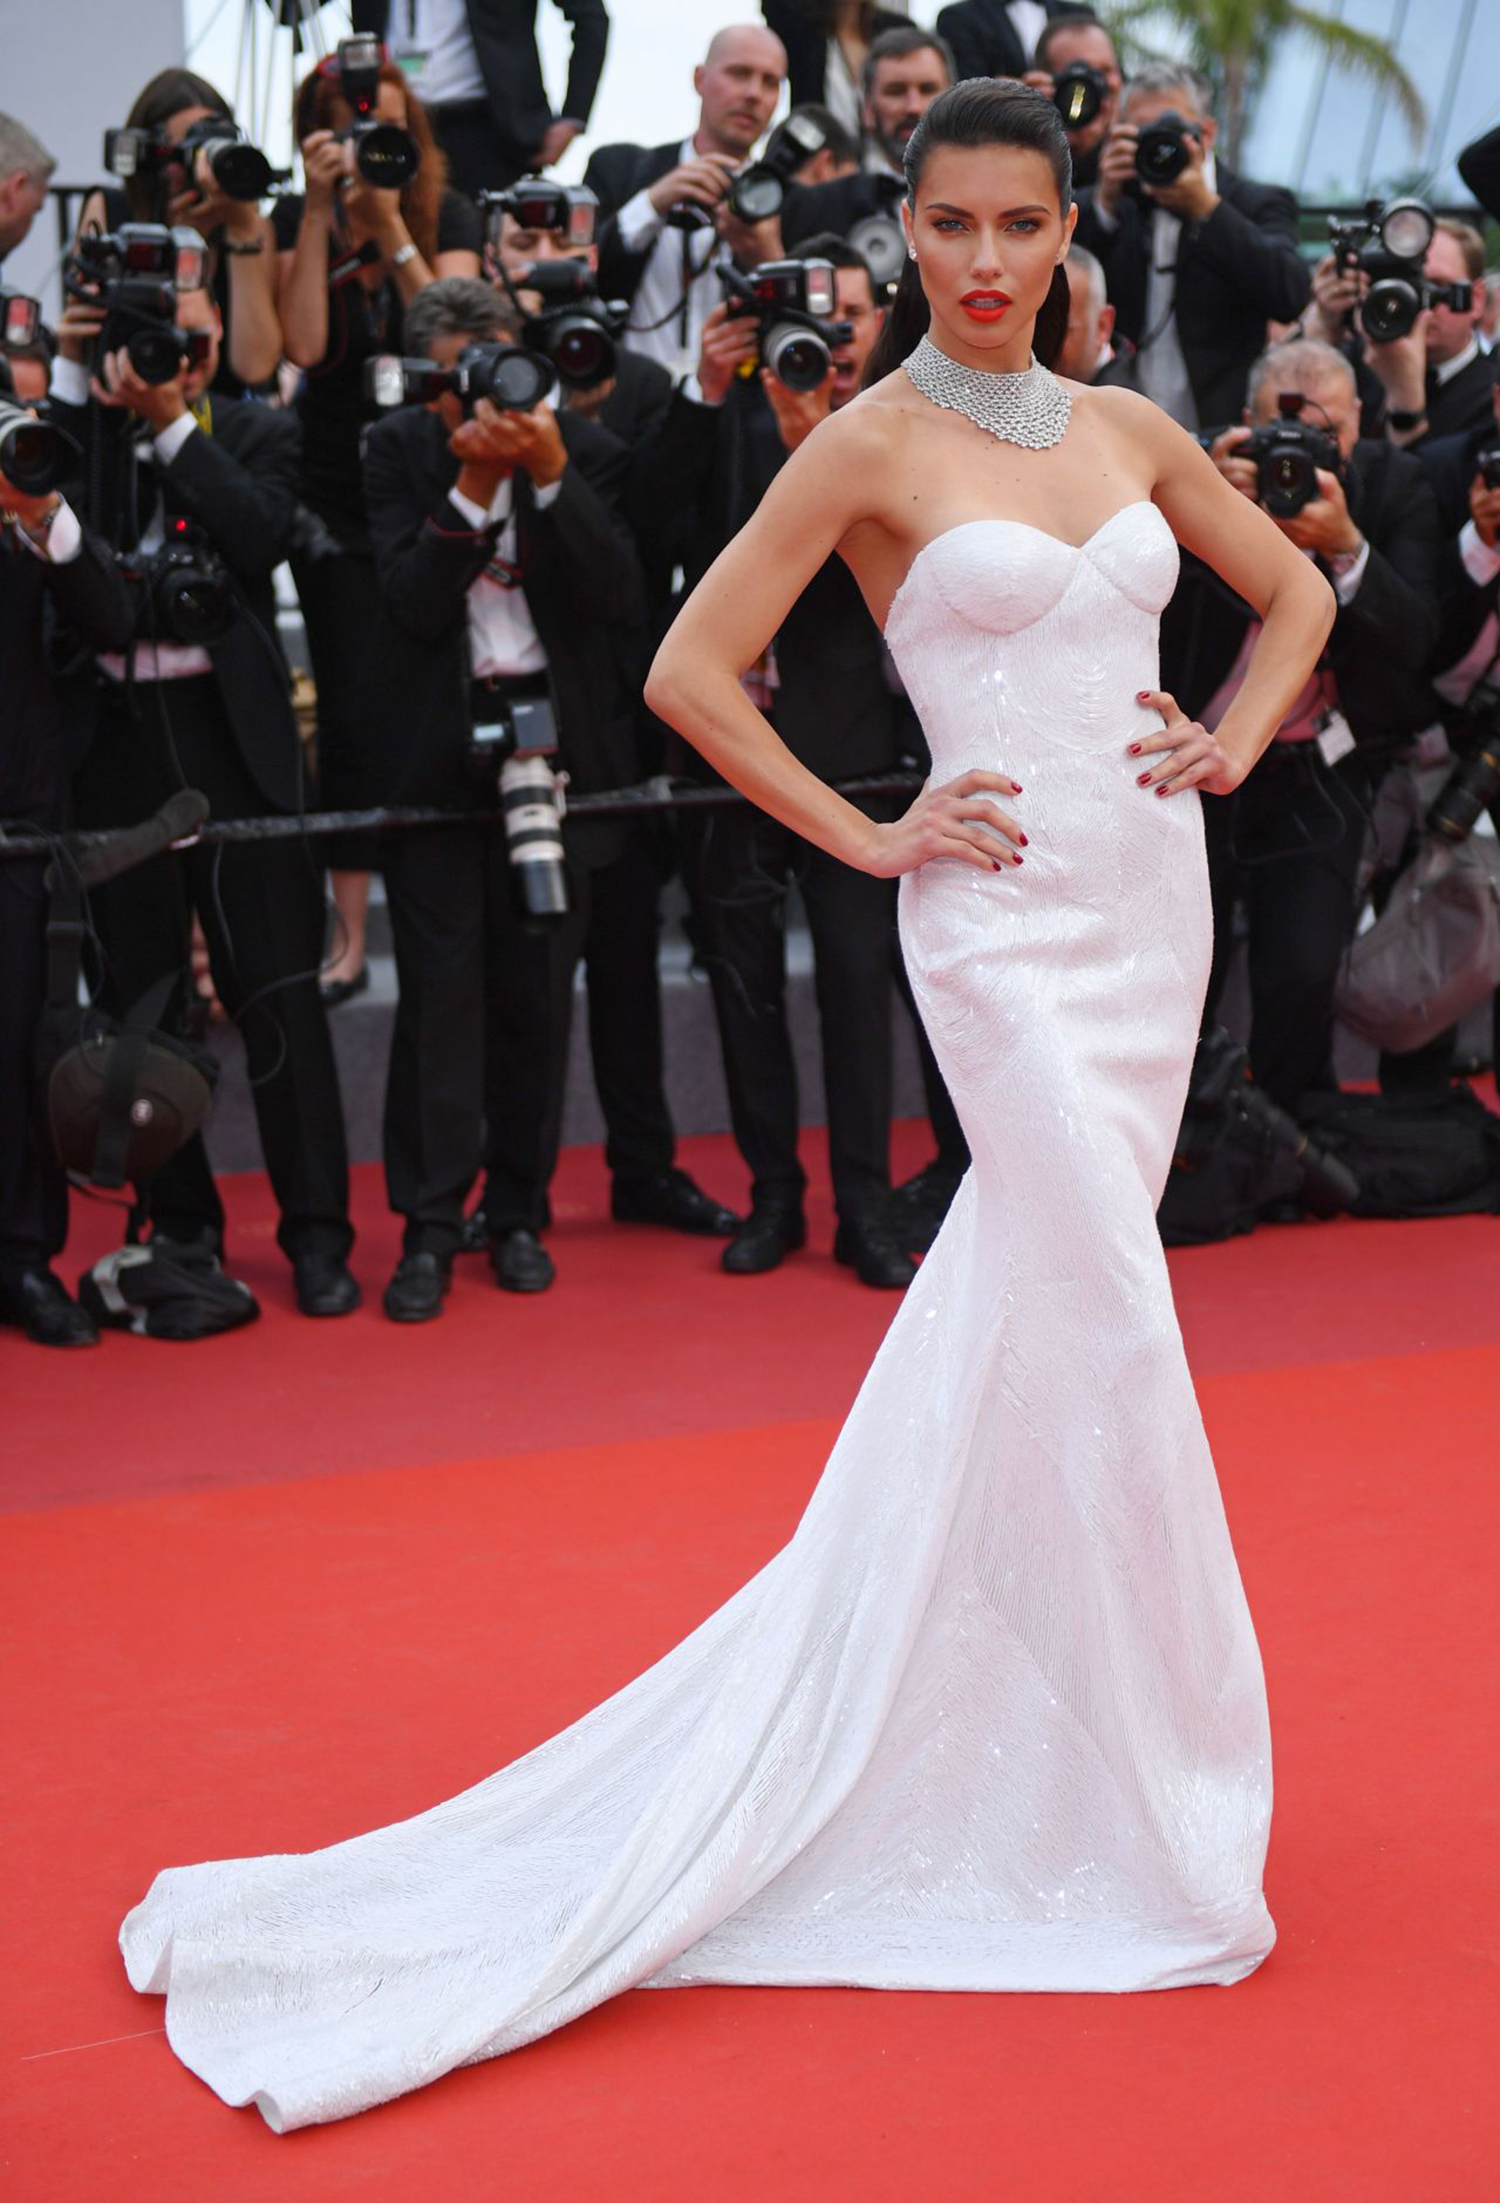 Adriana Lima at Cannes Film Festival